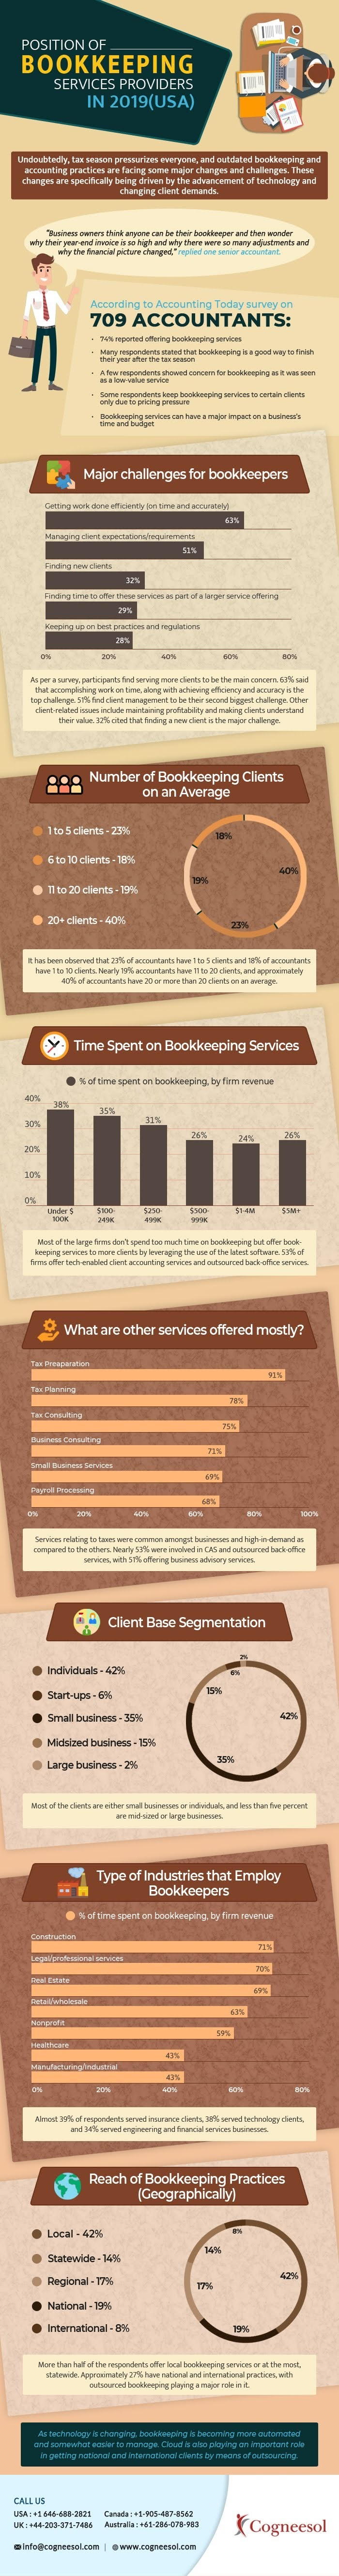 Position of Bookkeeping Services Providers in 2019 #infographic